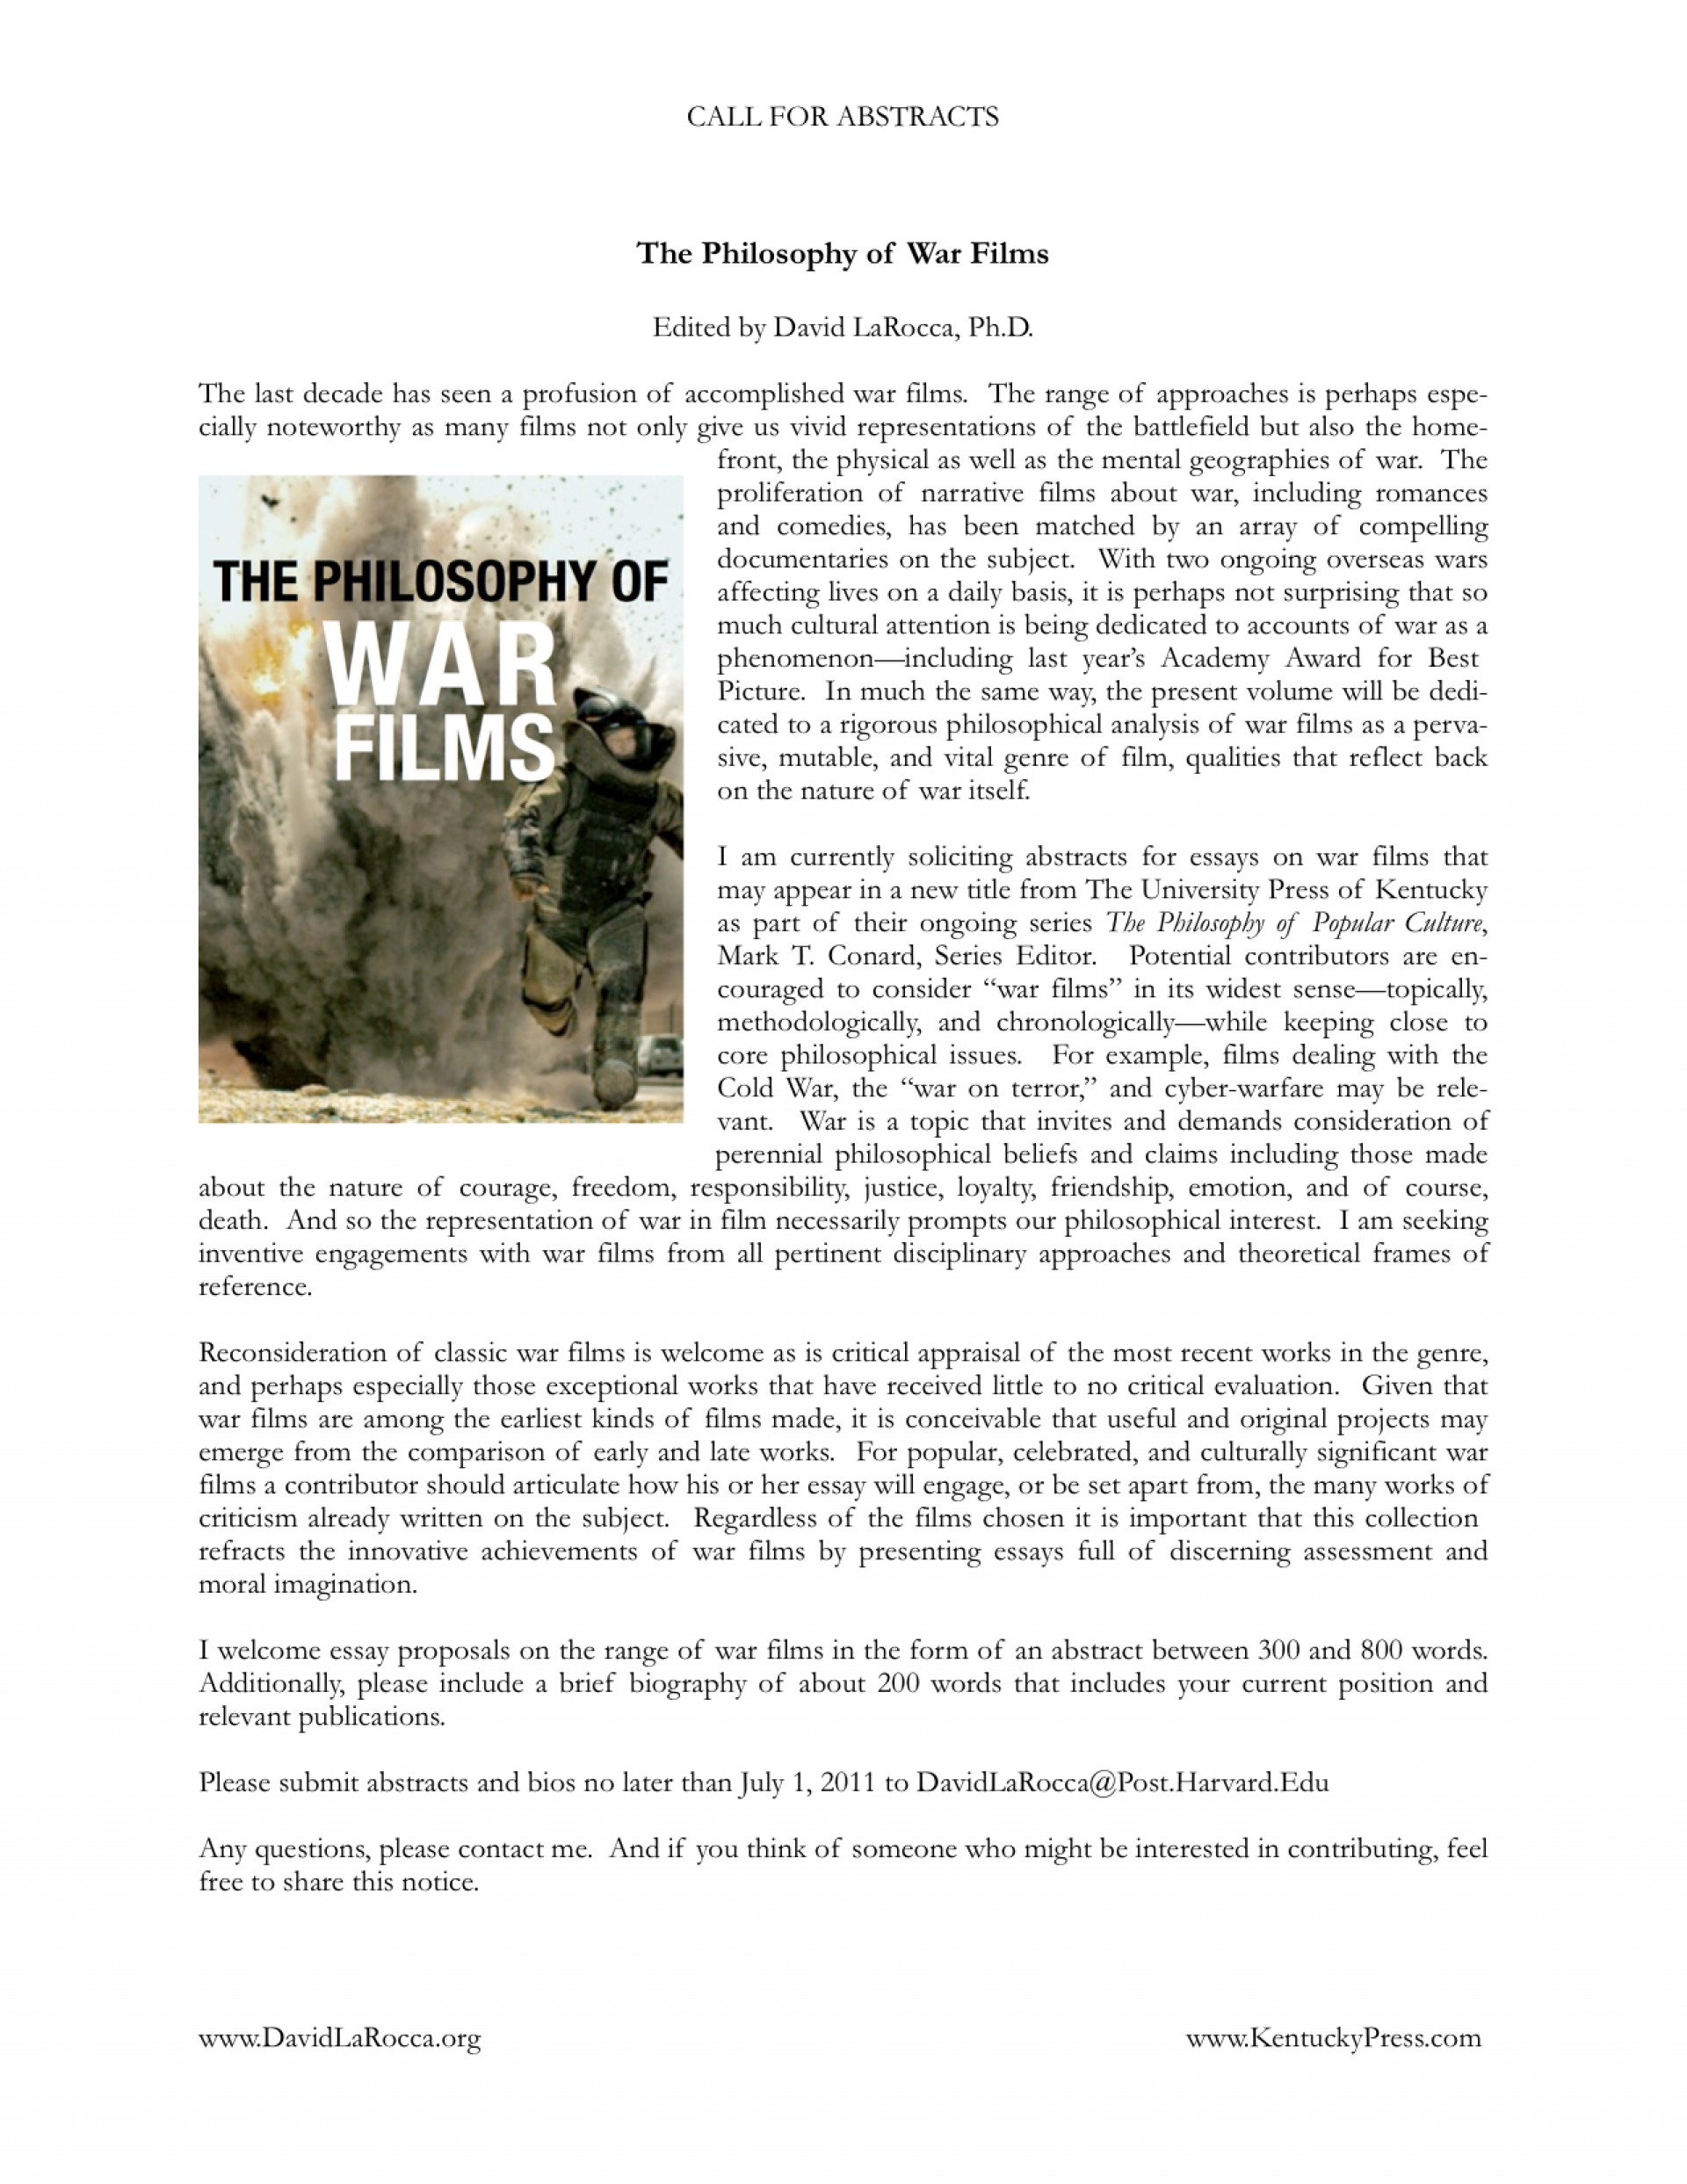 008 Philosophy Of War Films Cfp Larocca Essay Collection Shocking Collections For Students 2017 Best Pdf 1920